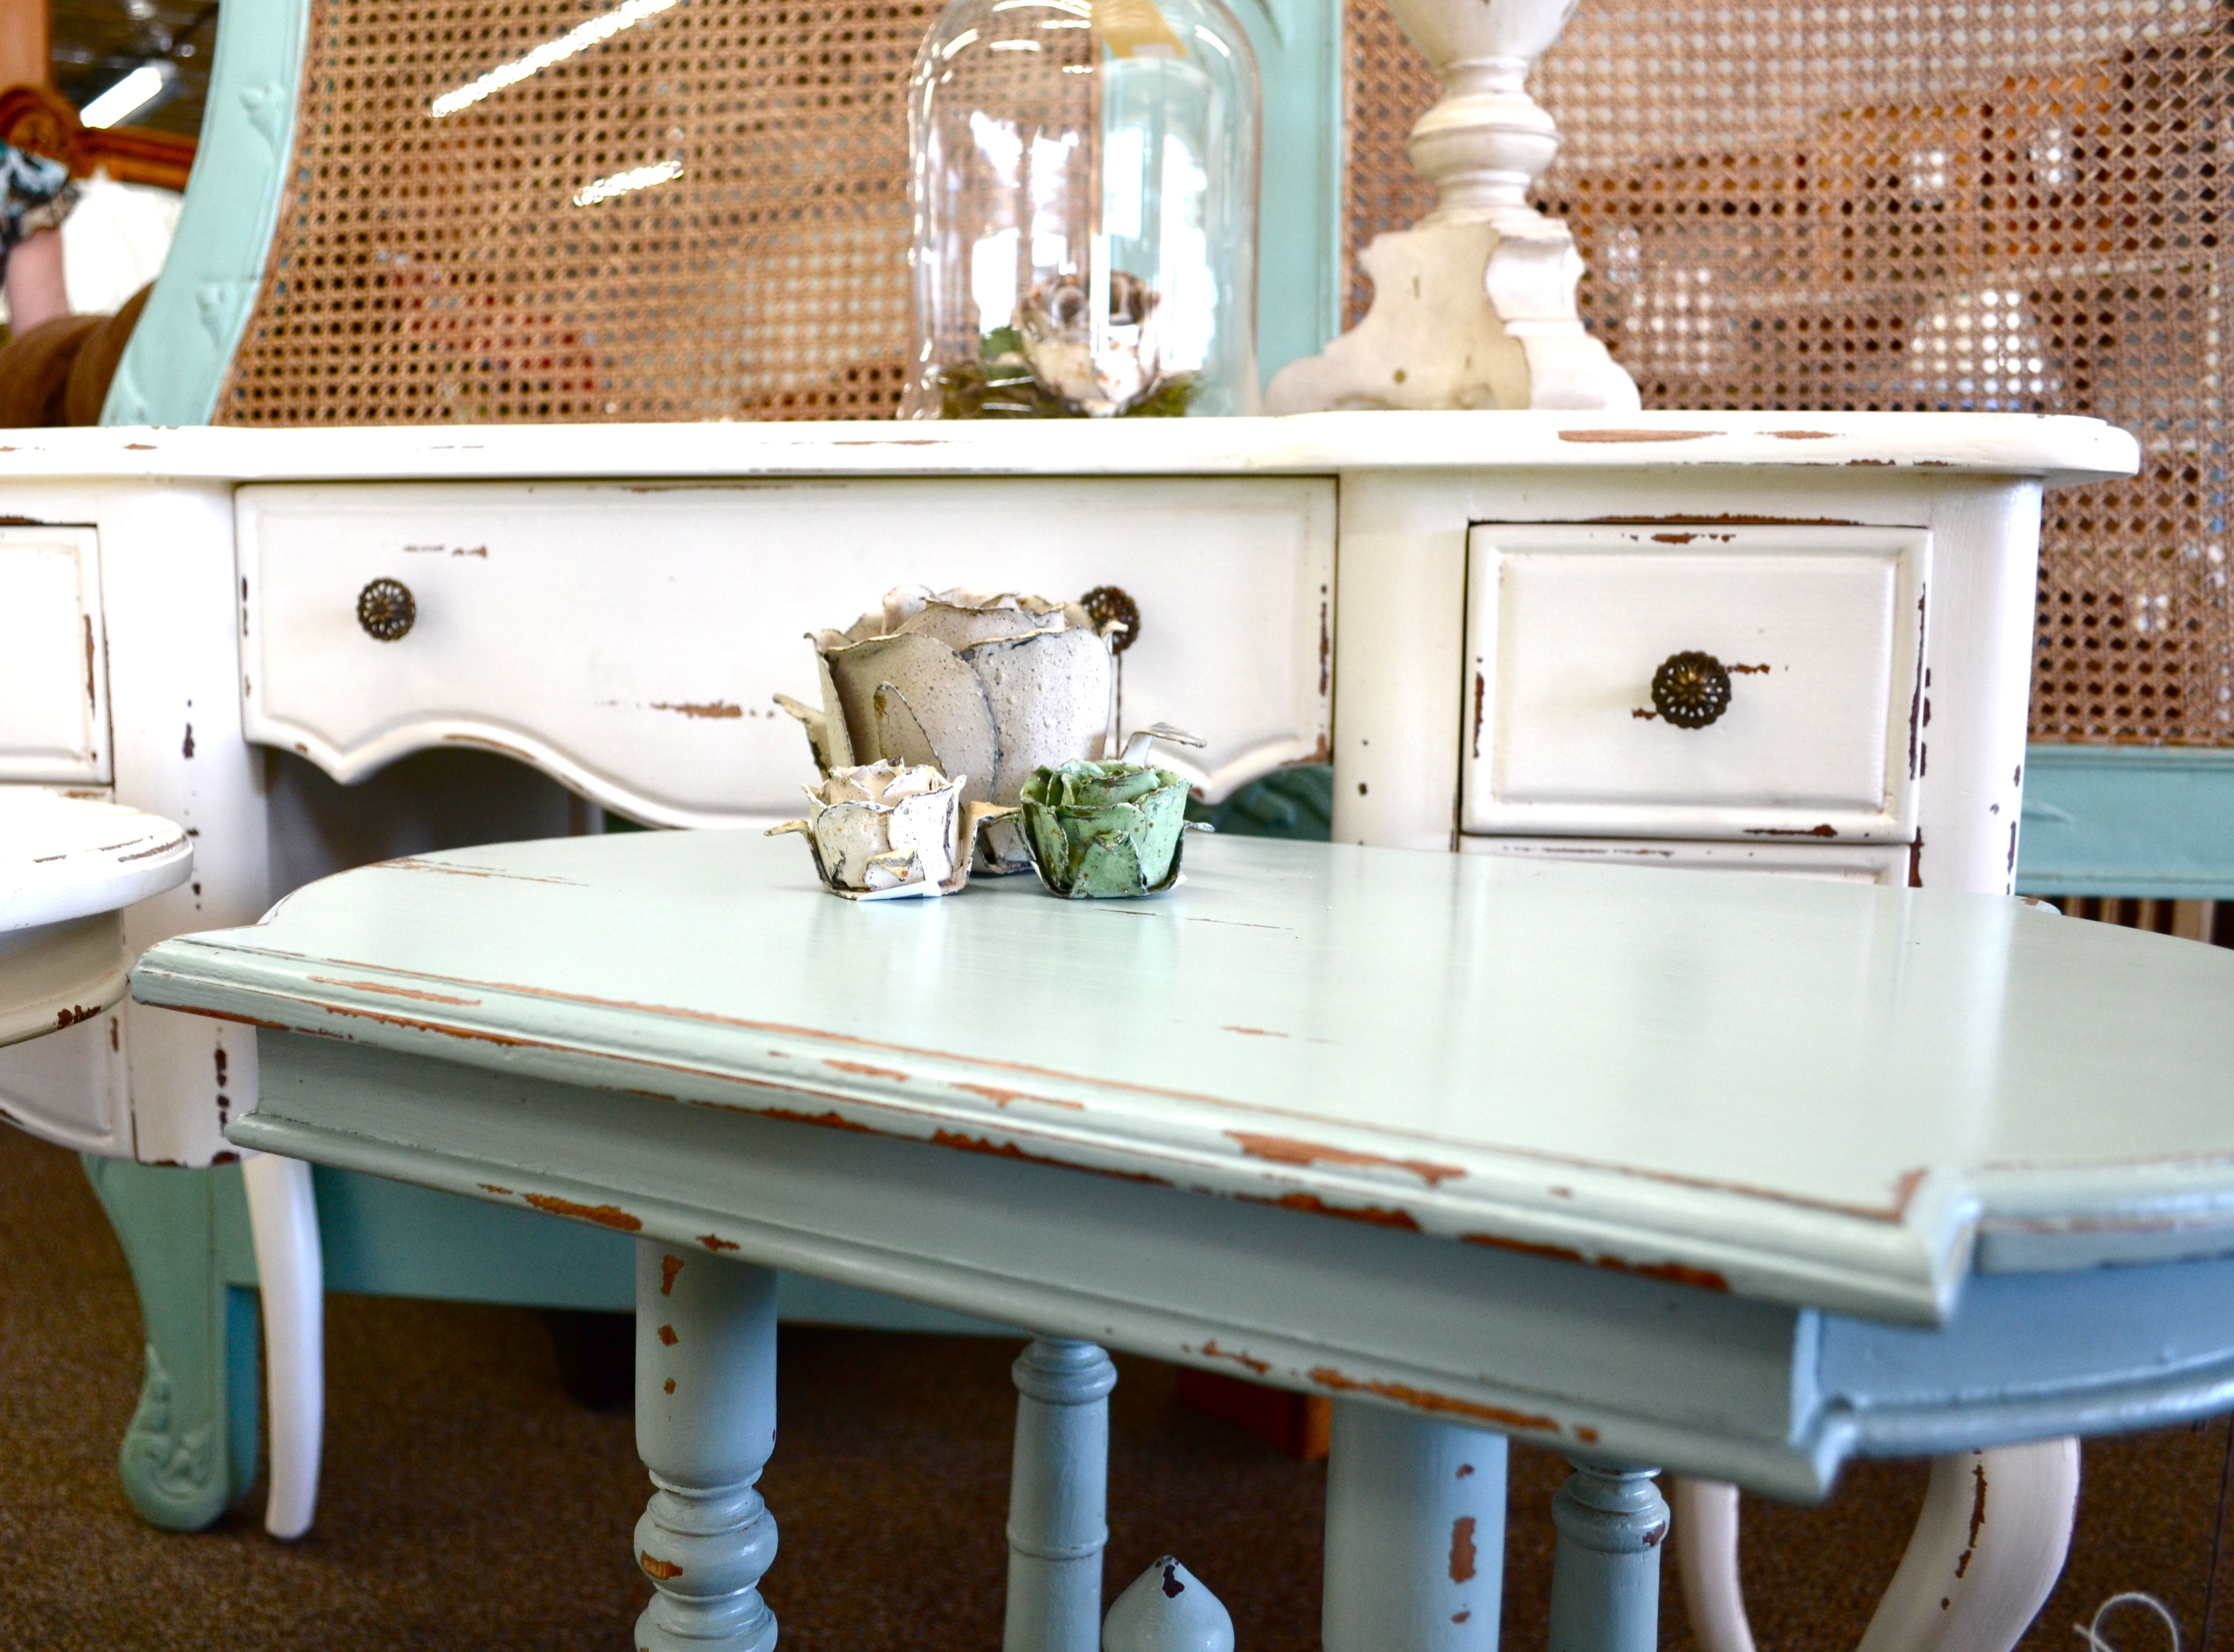 Distressed Teal And White Bramble Furniture At Tuckers Valley Near San Diego